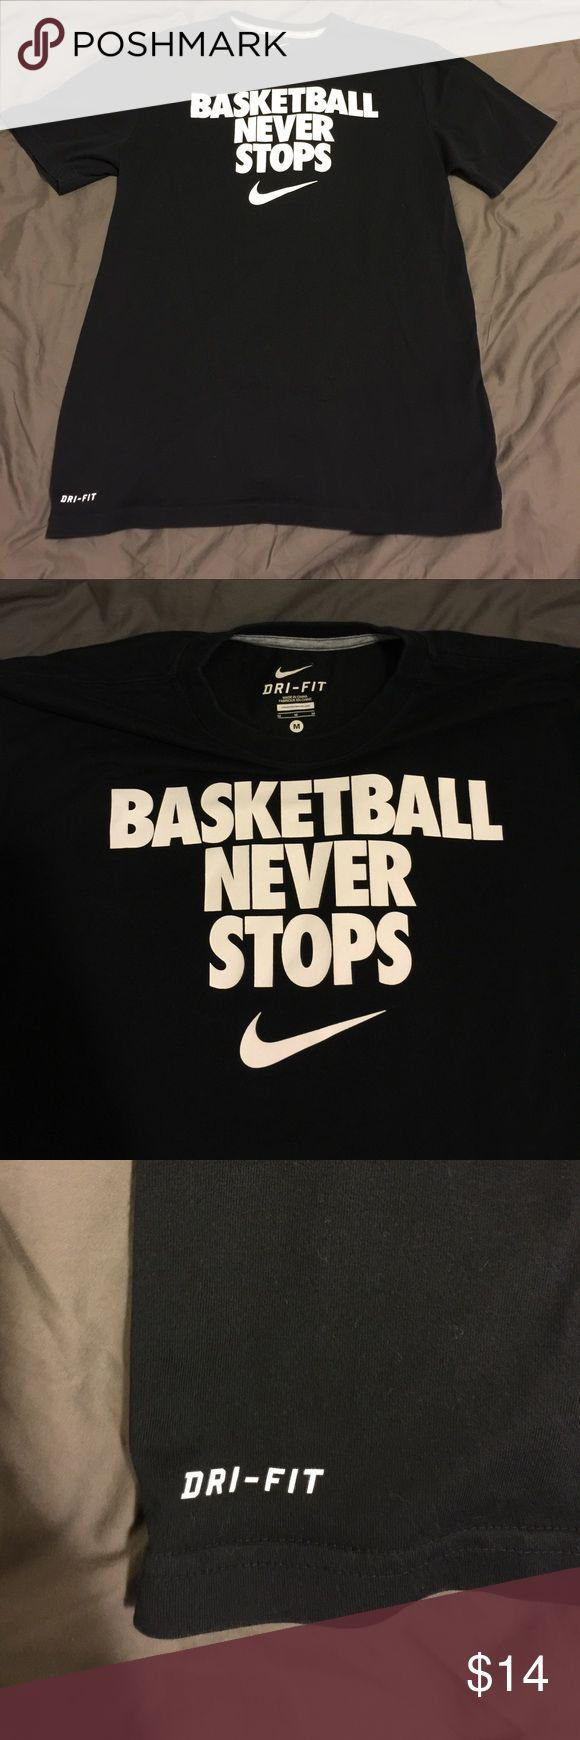 Nike Basketball men's medium Dri fit black white Men's basketball size medium, Nike Dri fit t shirt. From the famous lock out, brings this basketball never stops motto. Exclusive and historic shirt. Worn and washed 4x. Still a lot of use in this shirt. Nike Shirts Tees - Short Sleeve